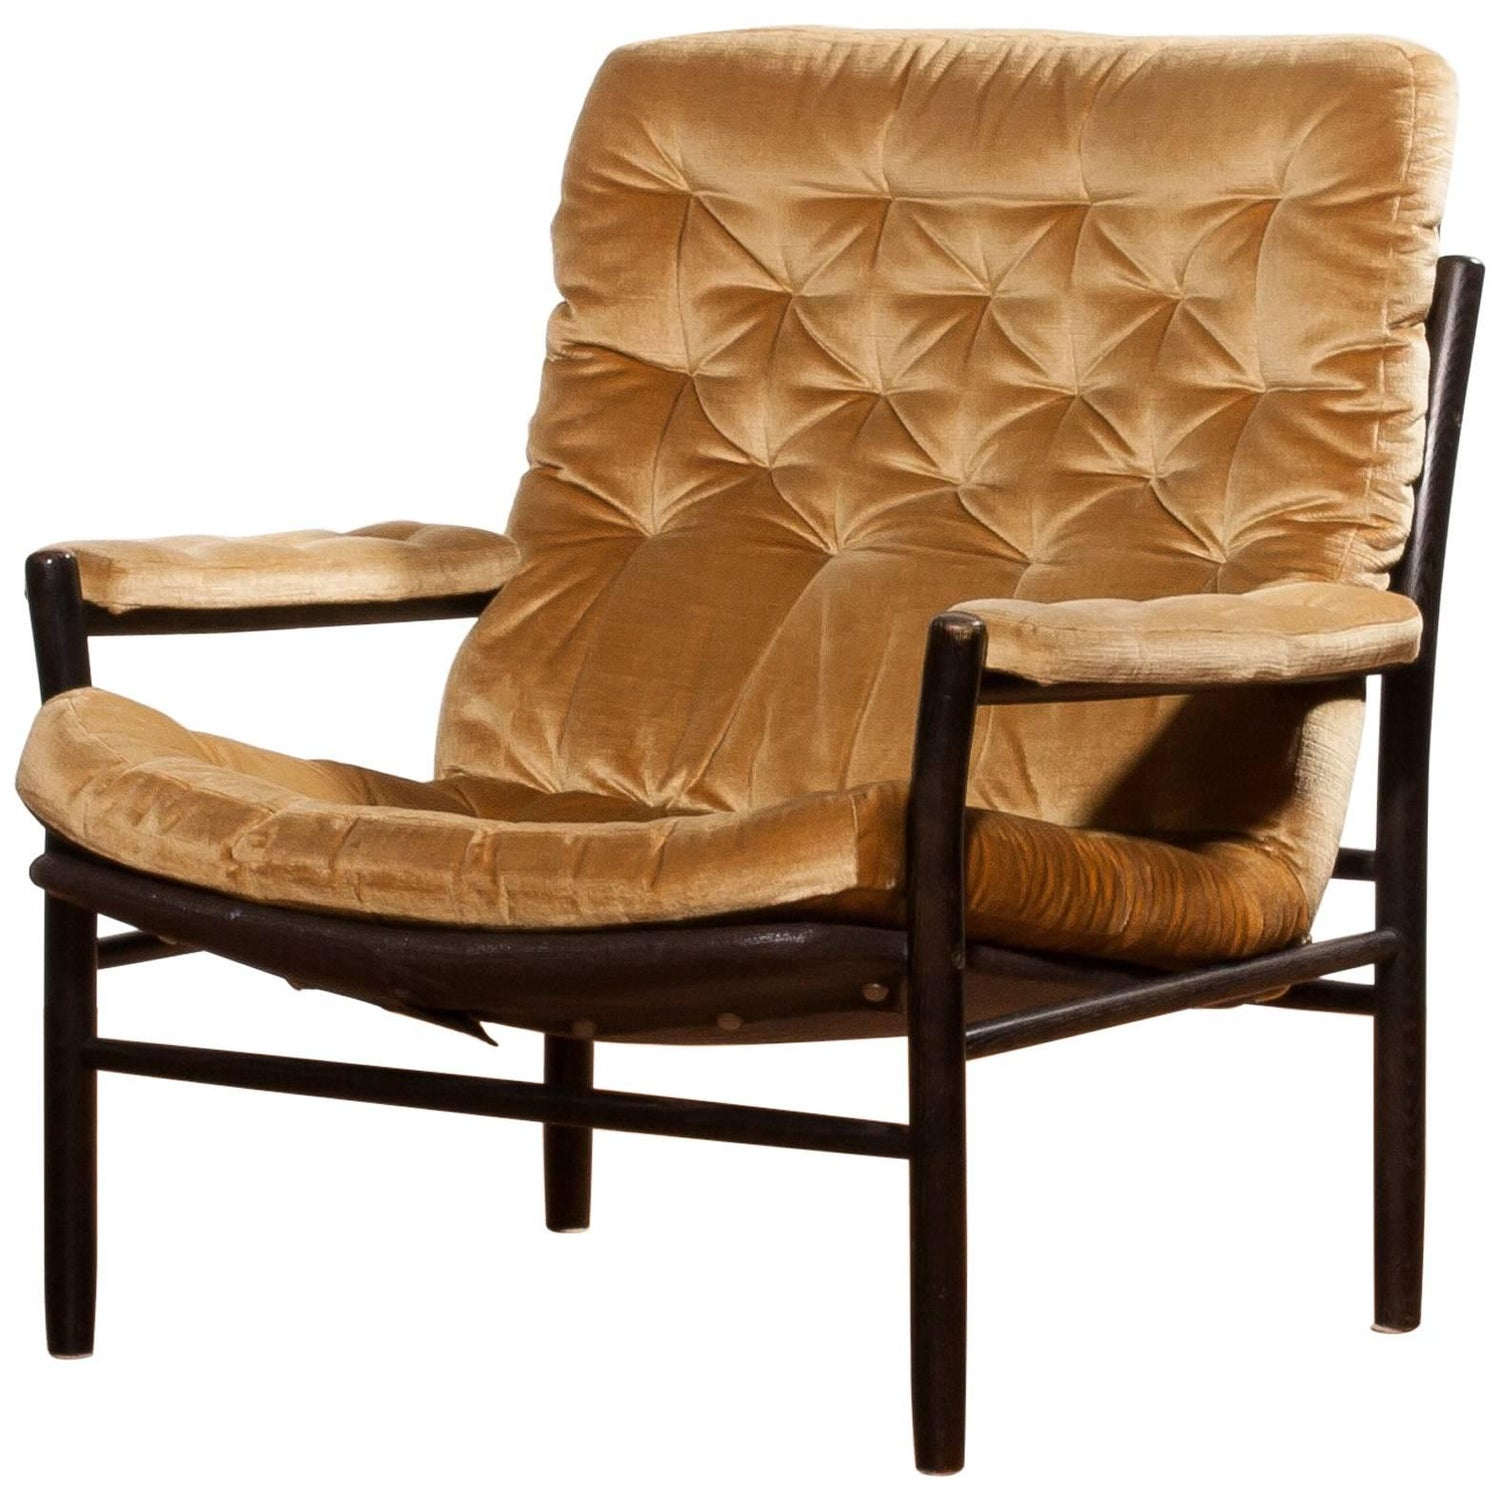 DUX Furniture Chairs Sofas Tables & More 142 For Sale at 1stdibs